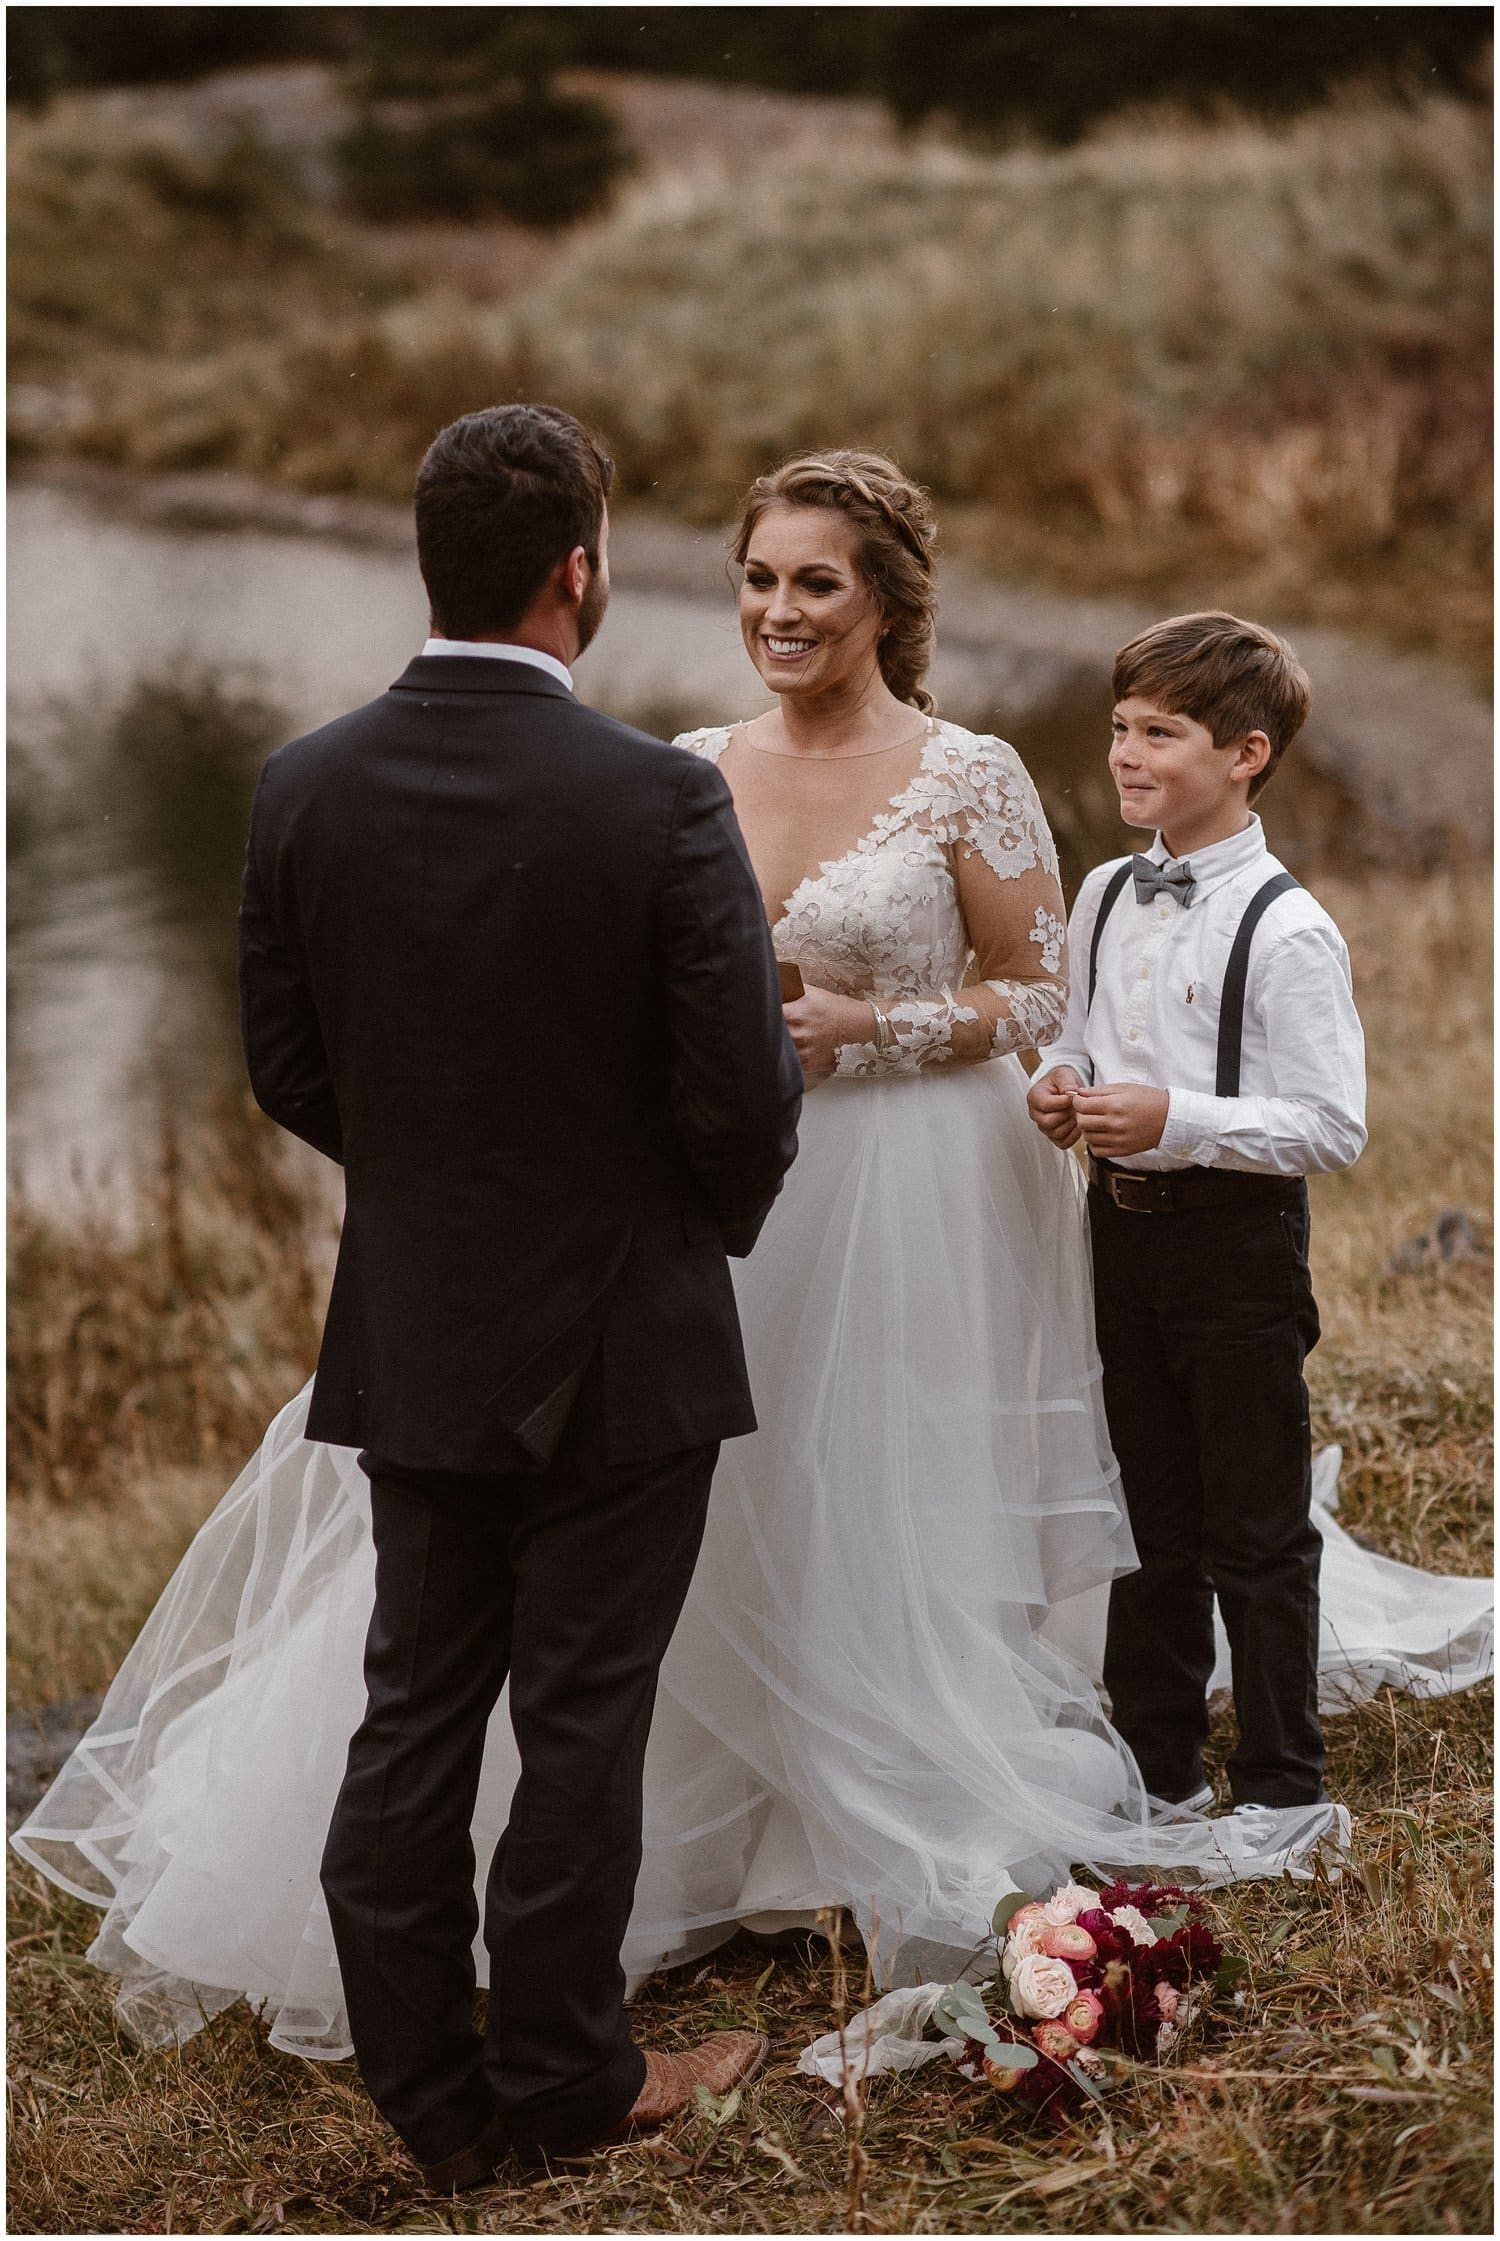 Bride and groom smile at each other with their son standing by their side.